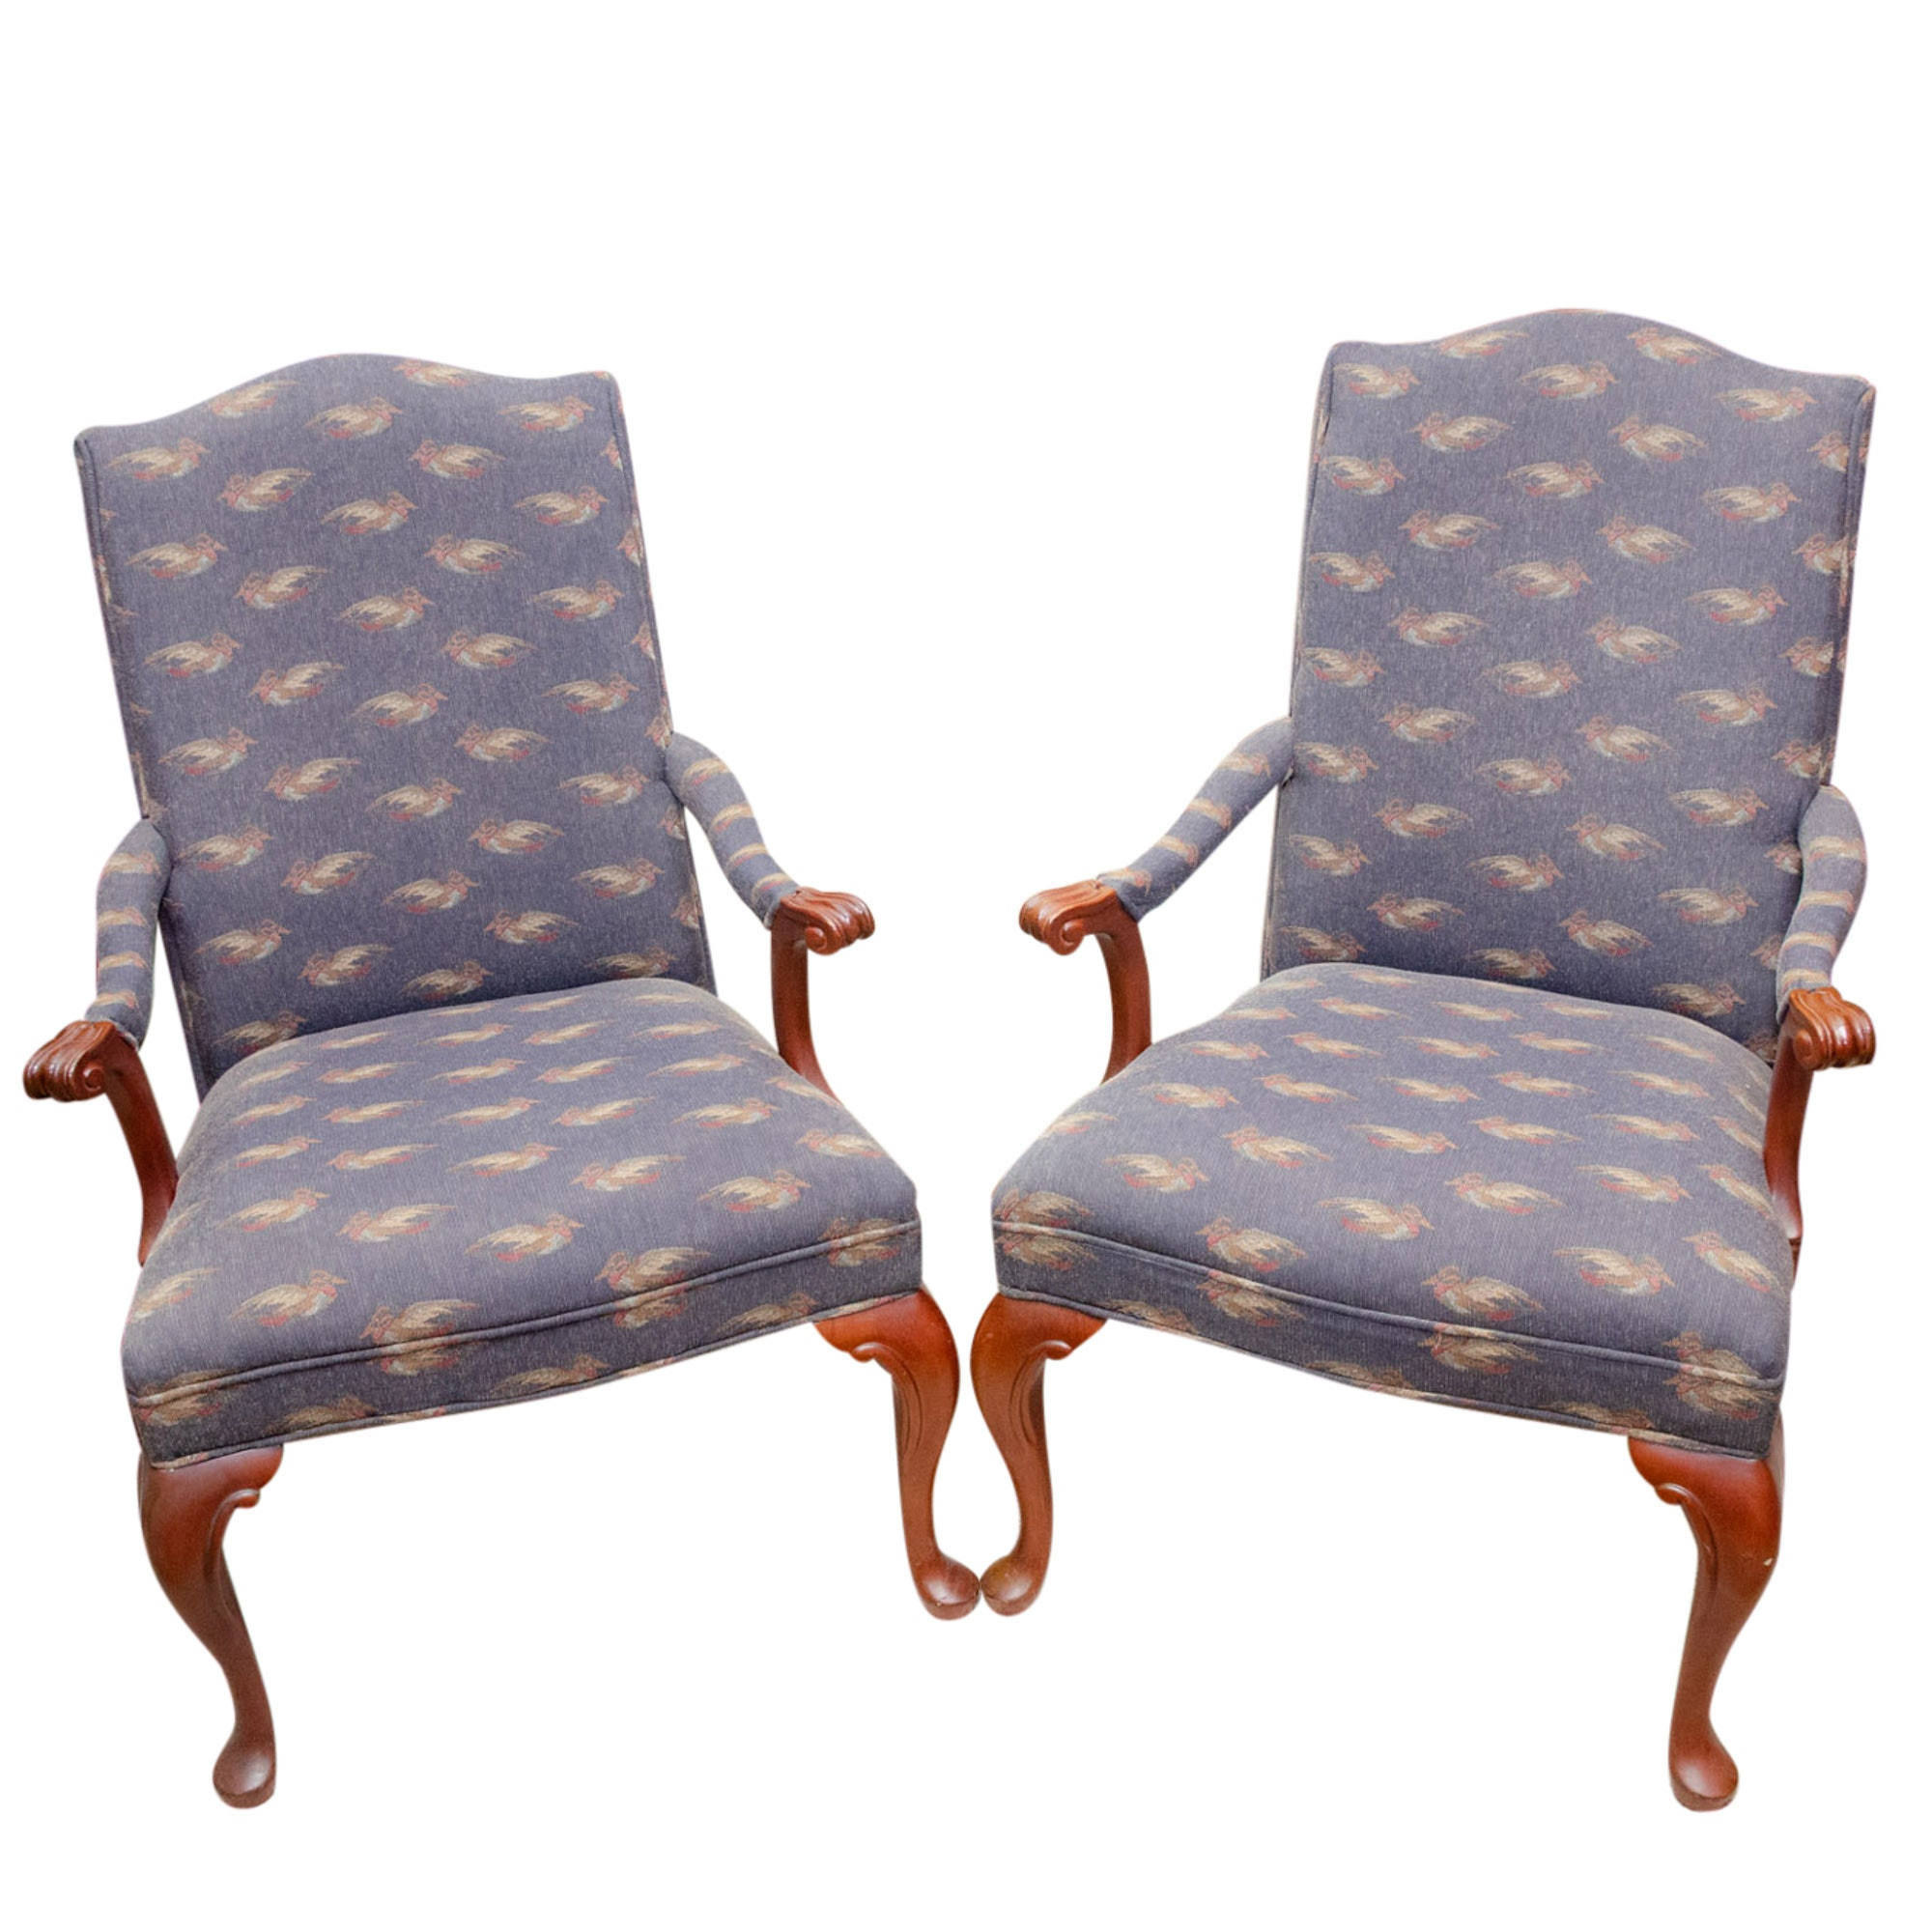 Burnhardt Queen Anne Style Upholstered Armchairs